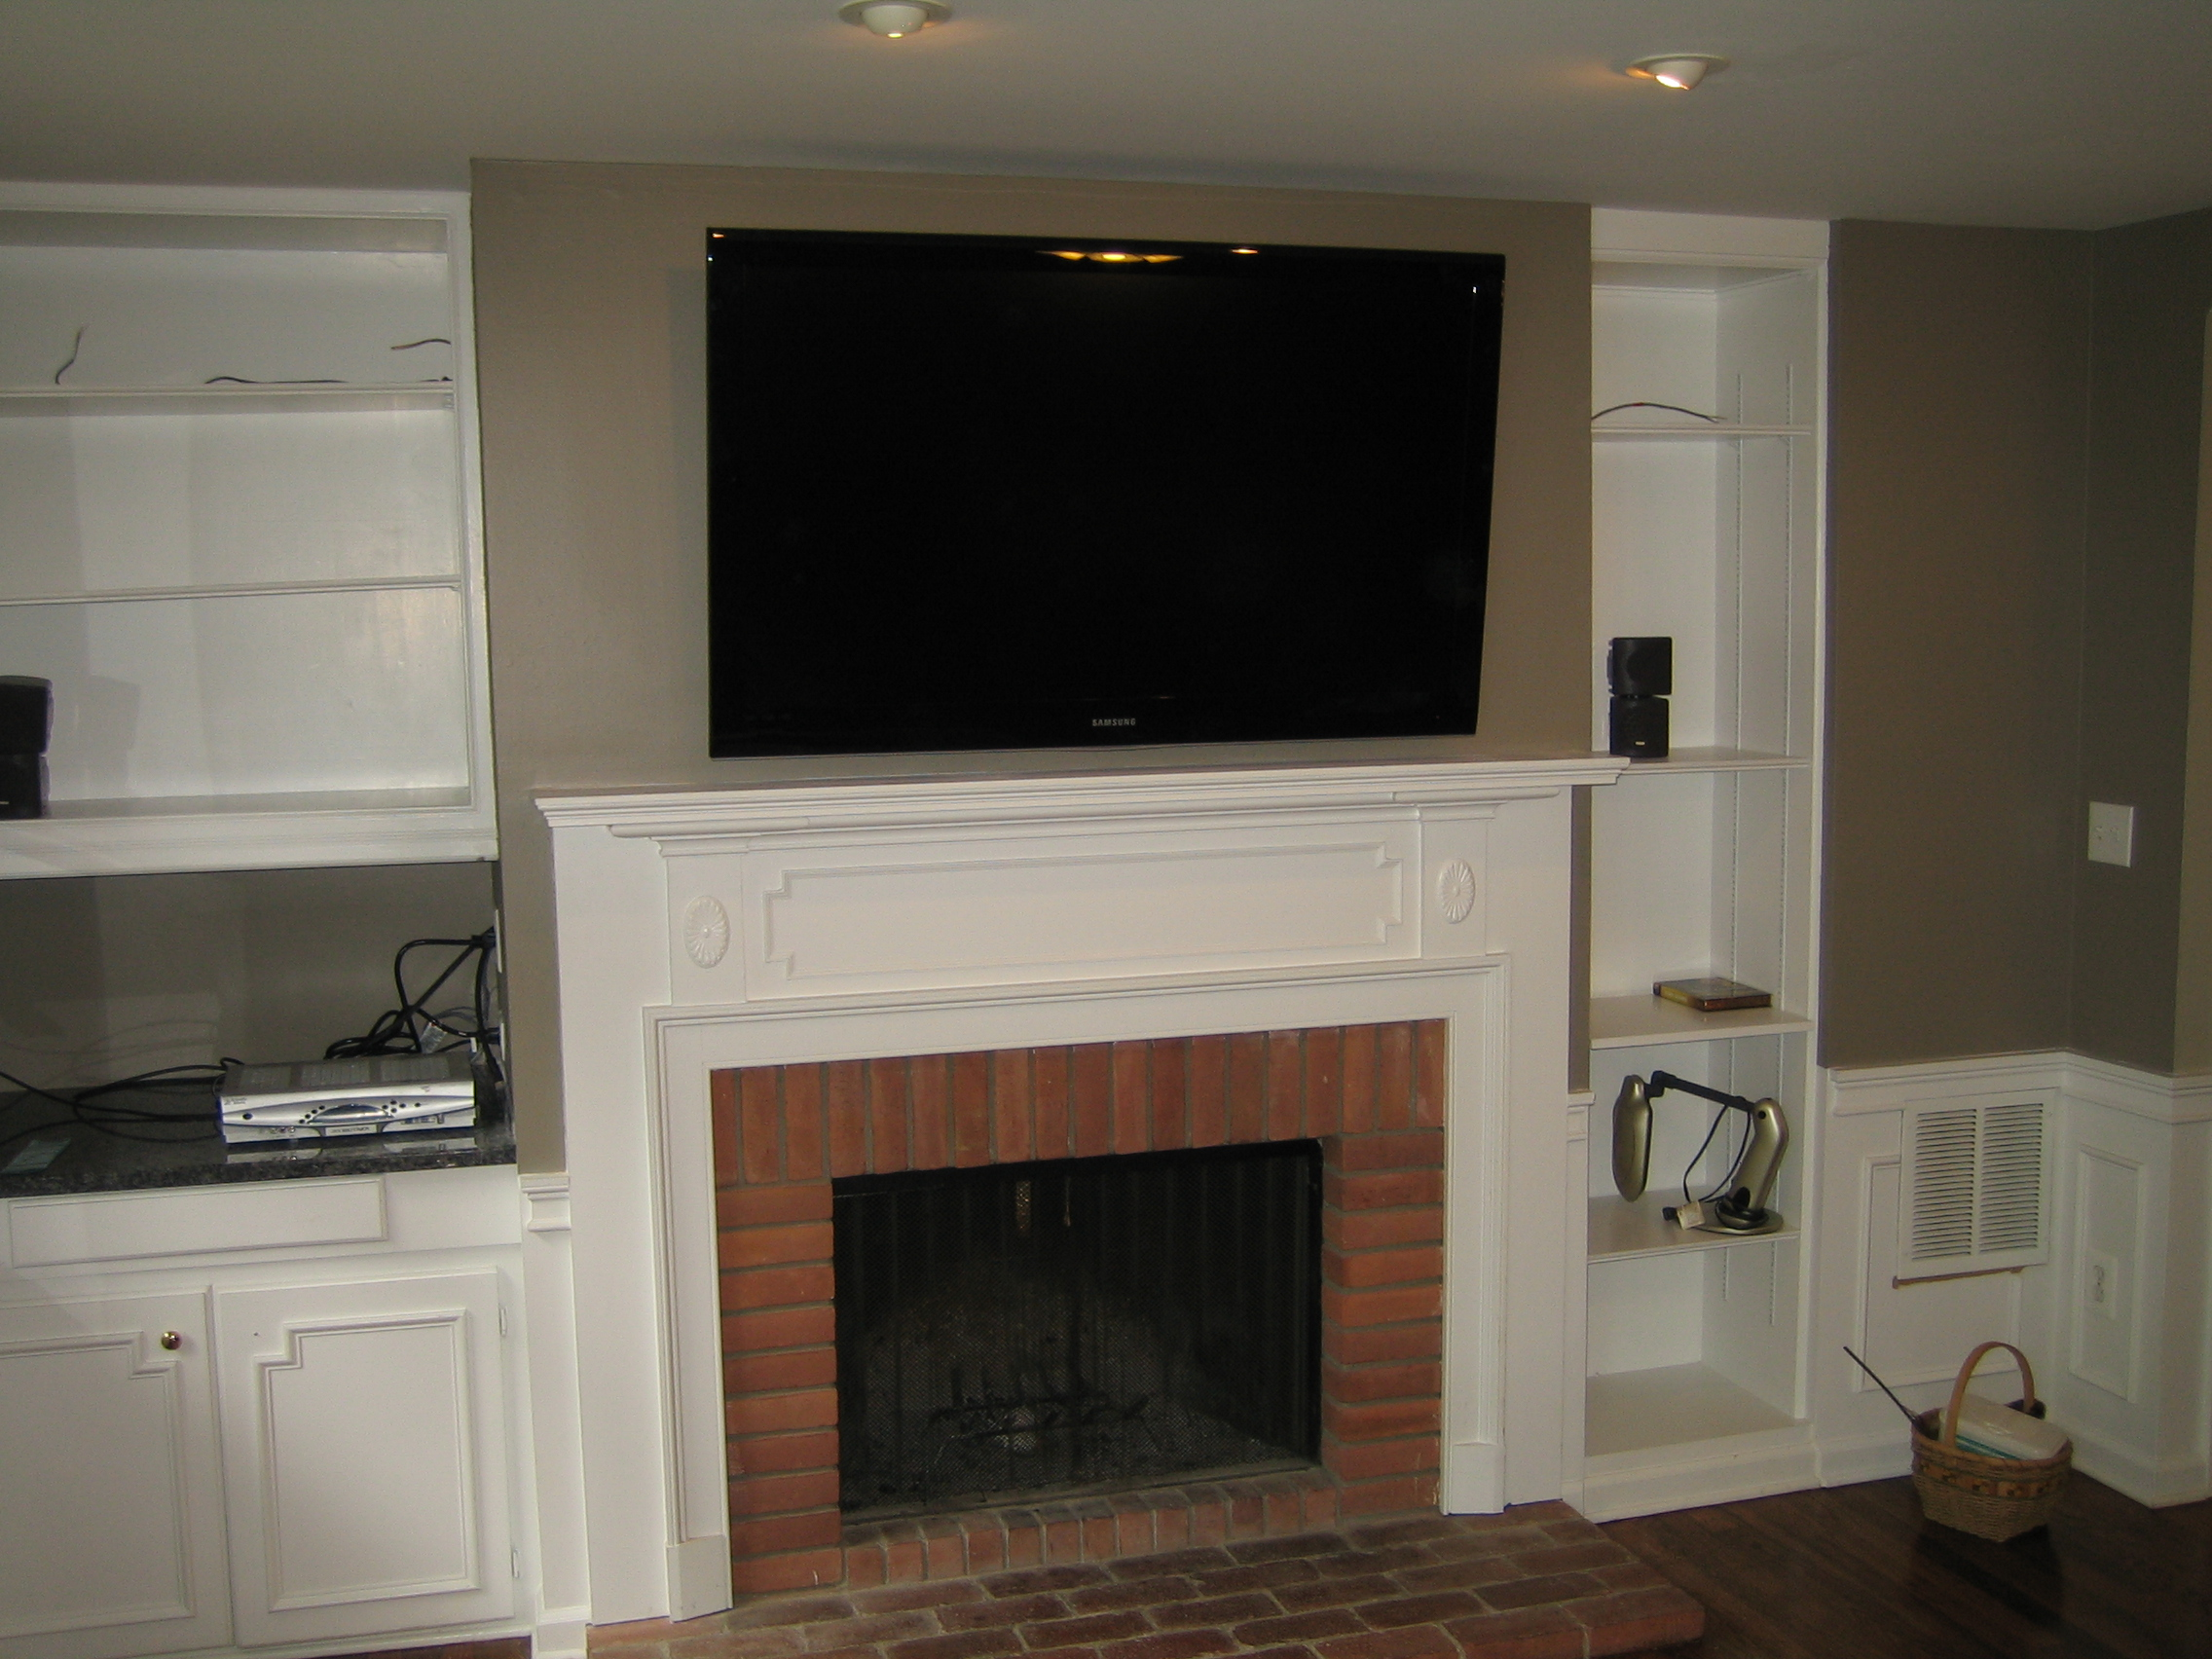 Install Tv Above Fireplace Hide Wires Home Design Ideas